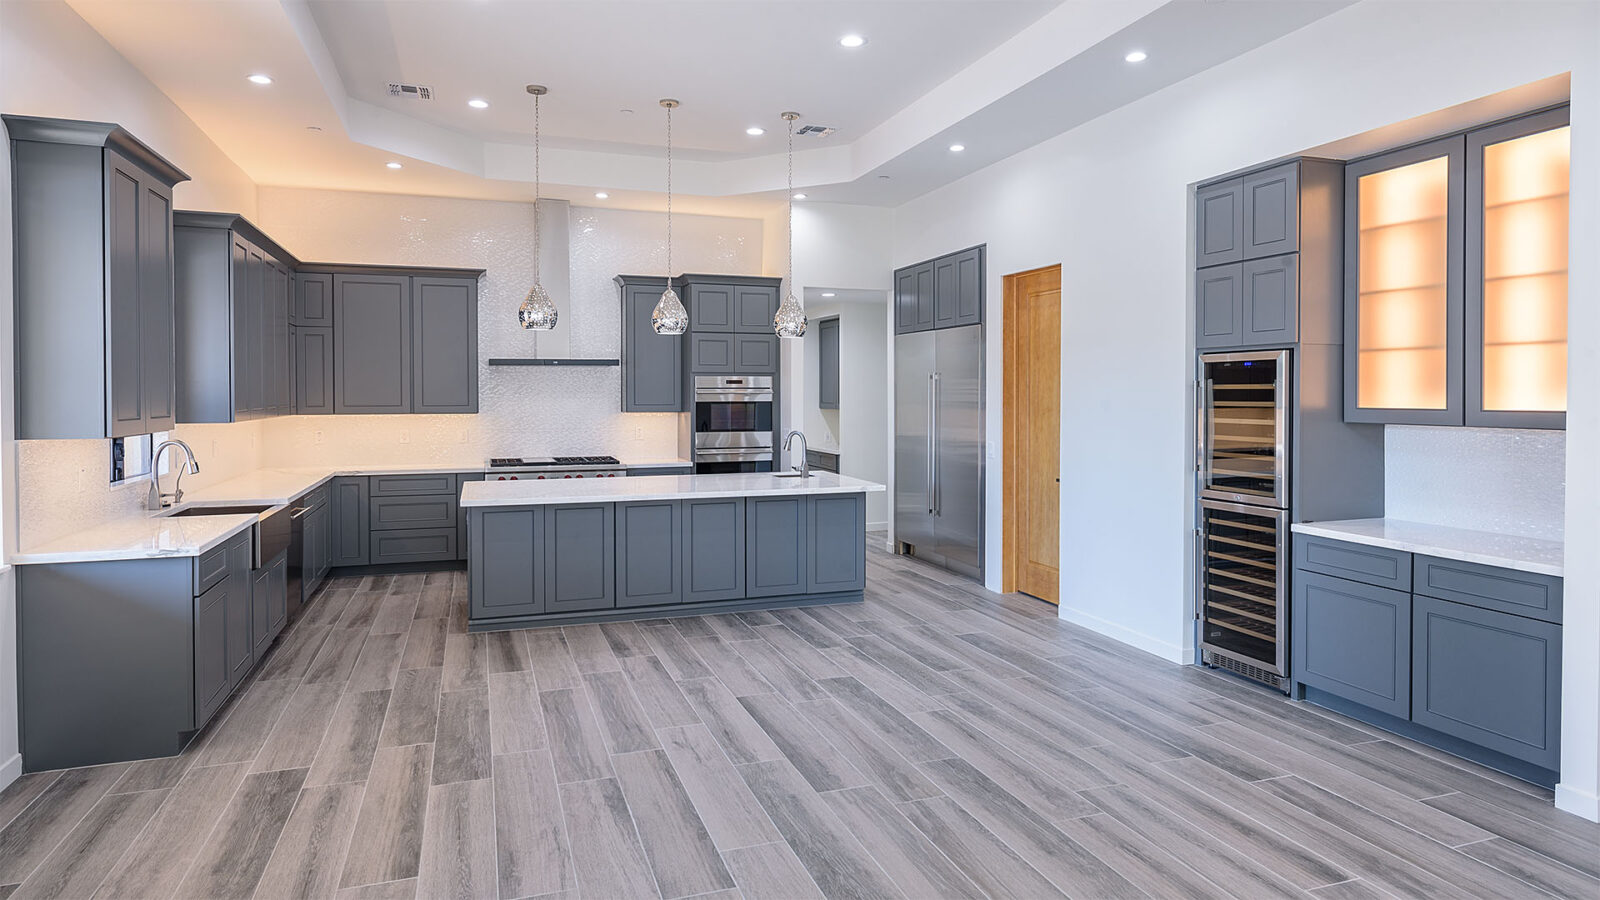 A wide kitchen with grey-painted panels